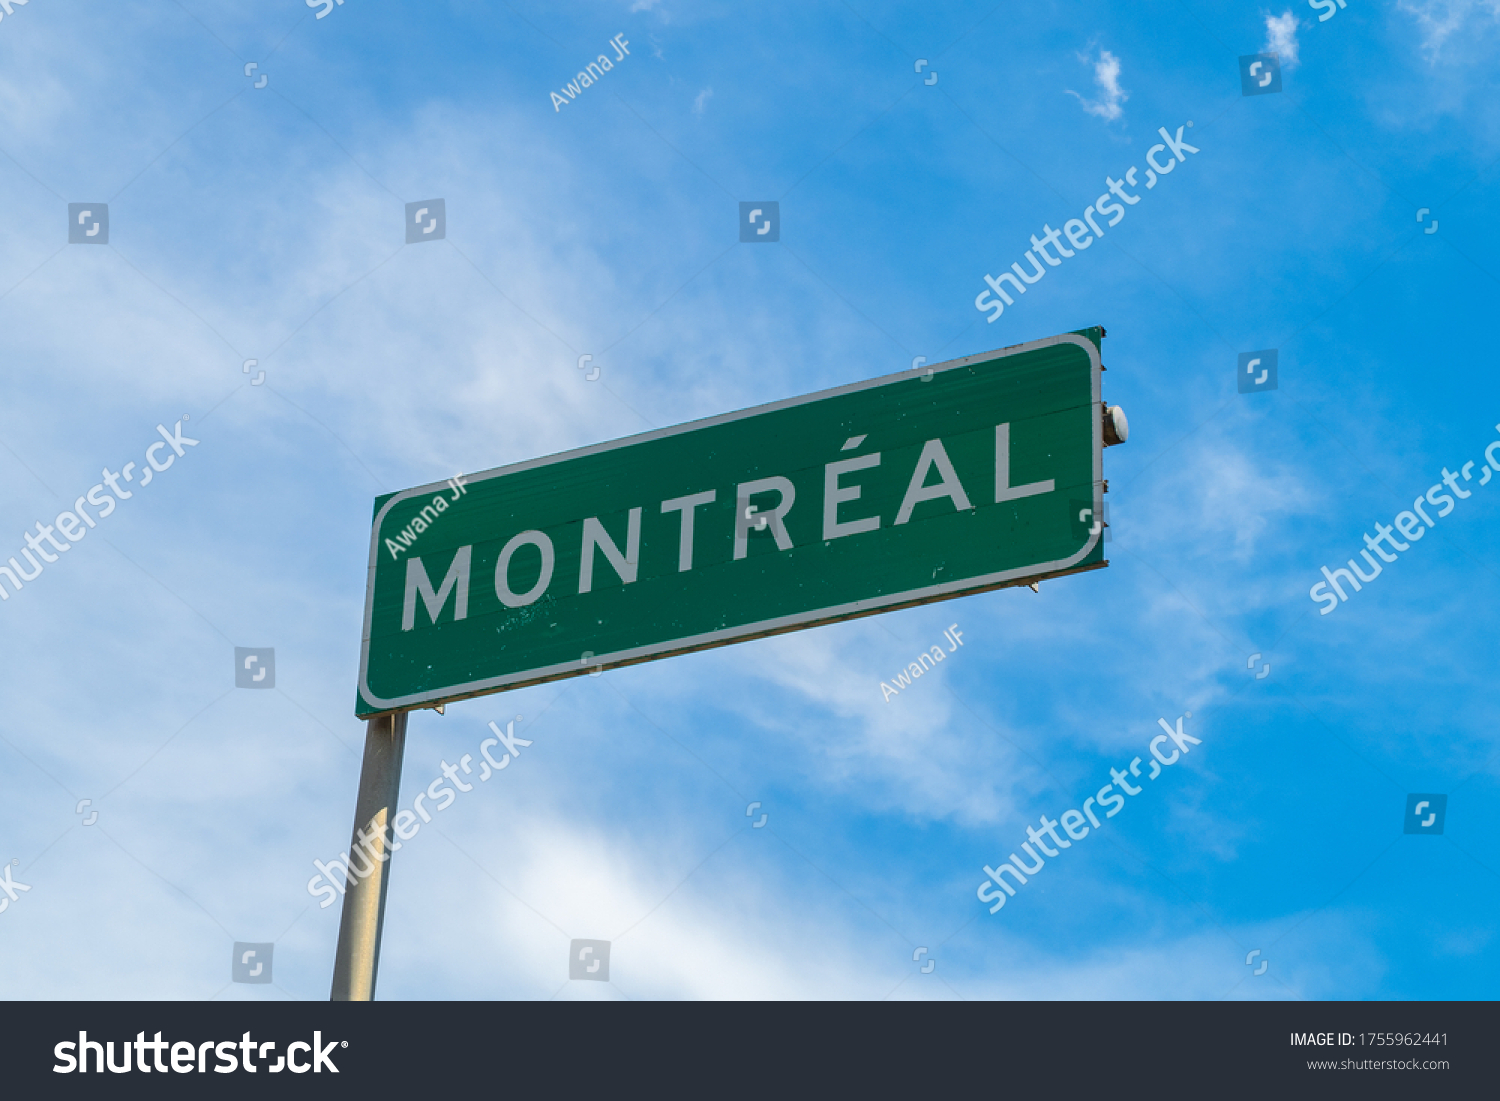 stock-photo-isolated-view-of-a-montreal-